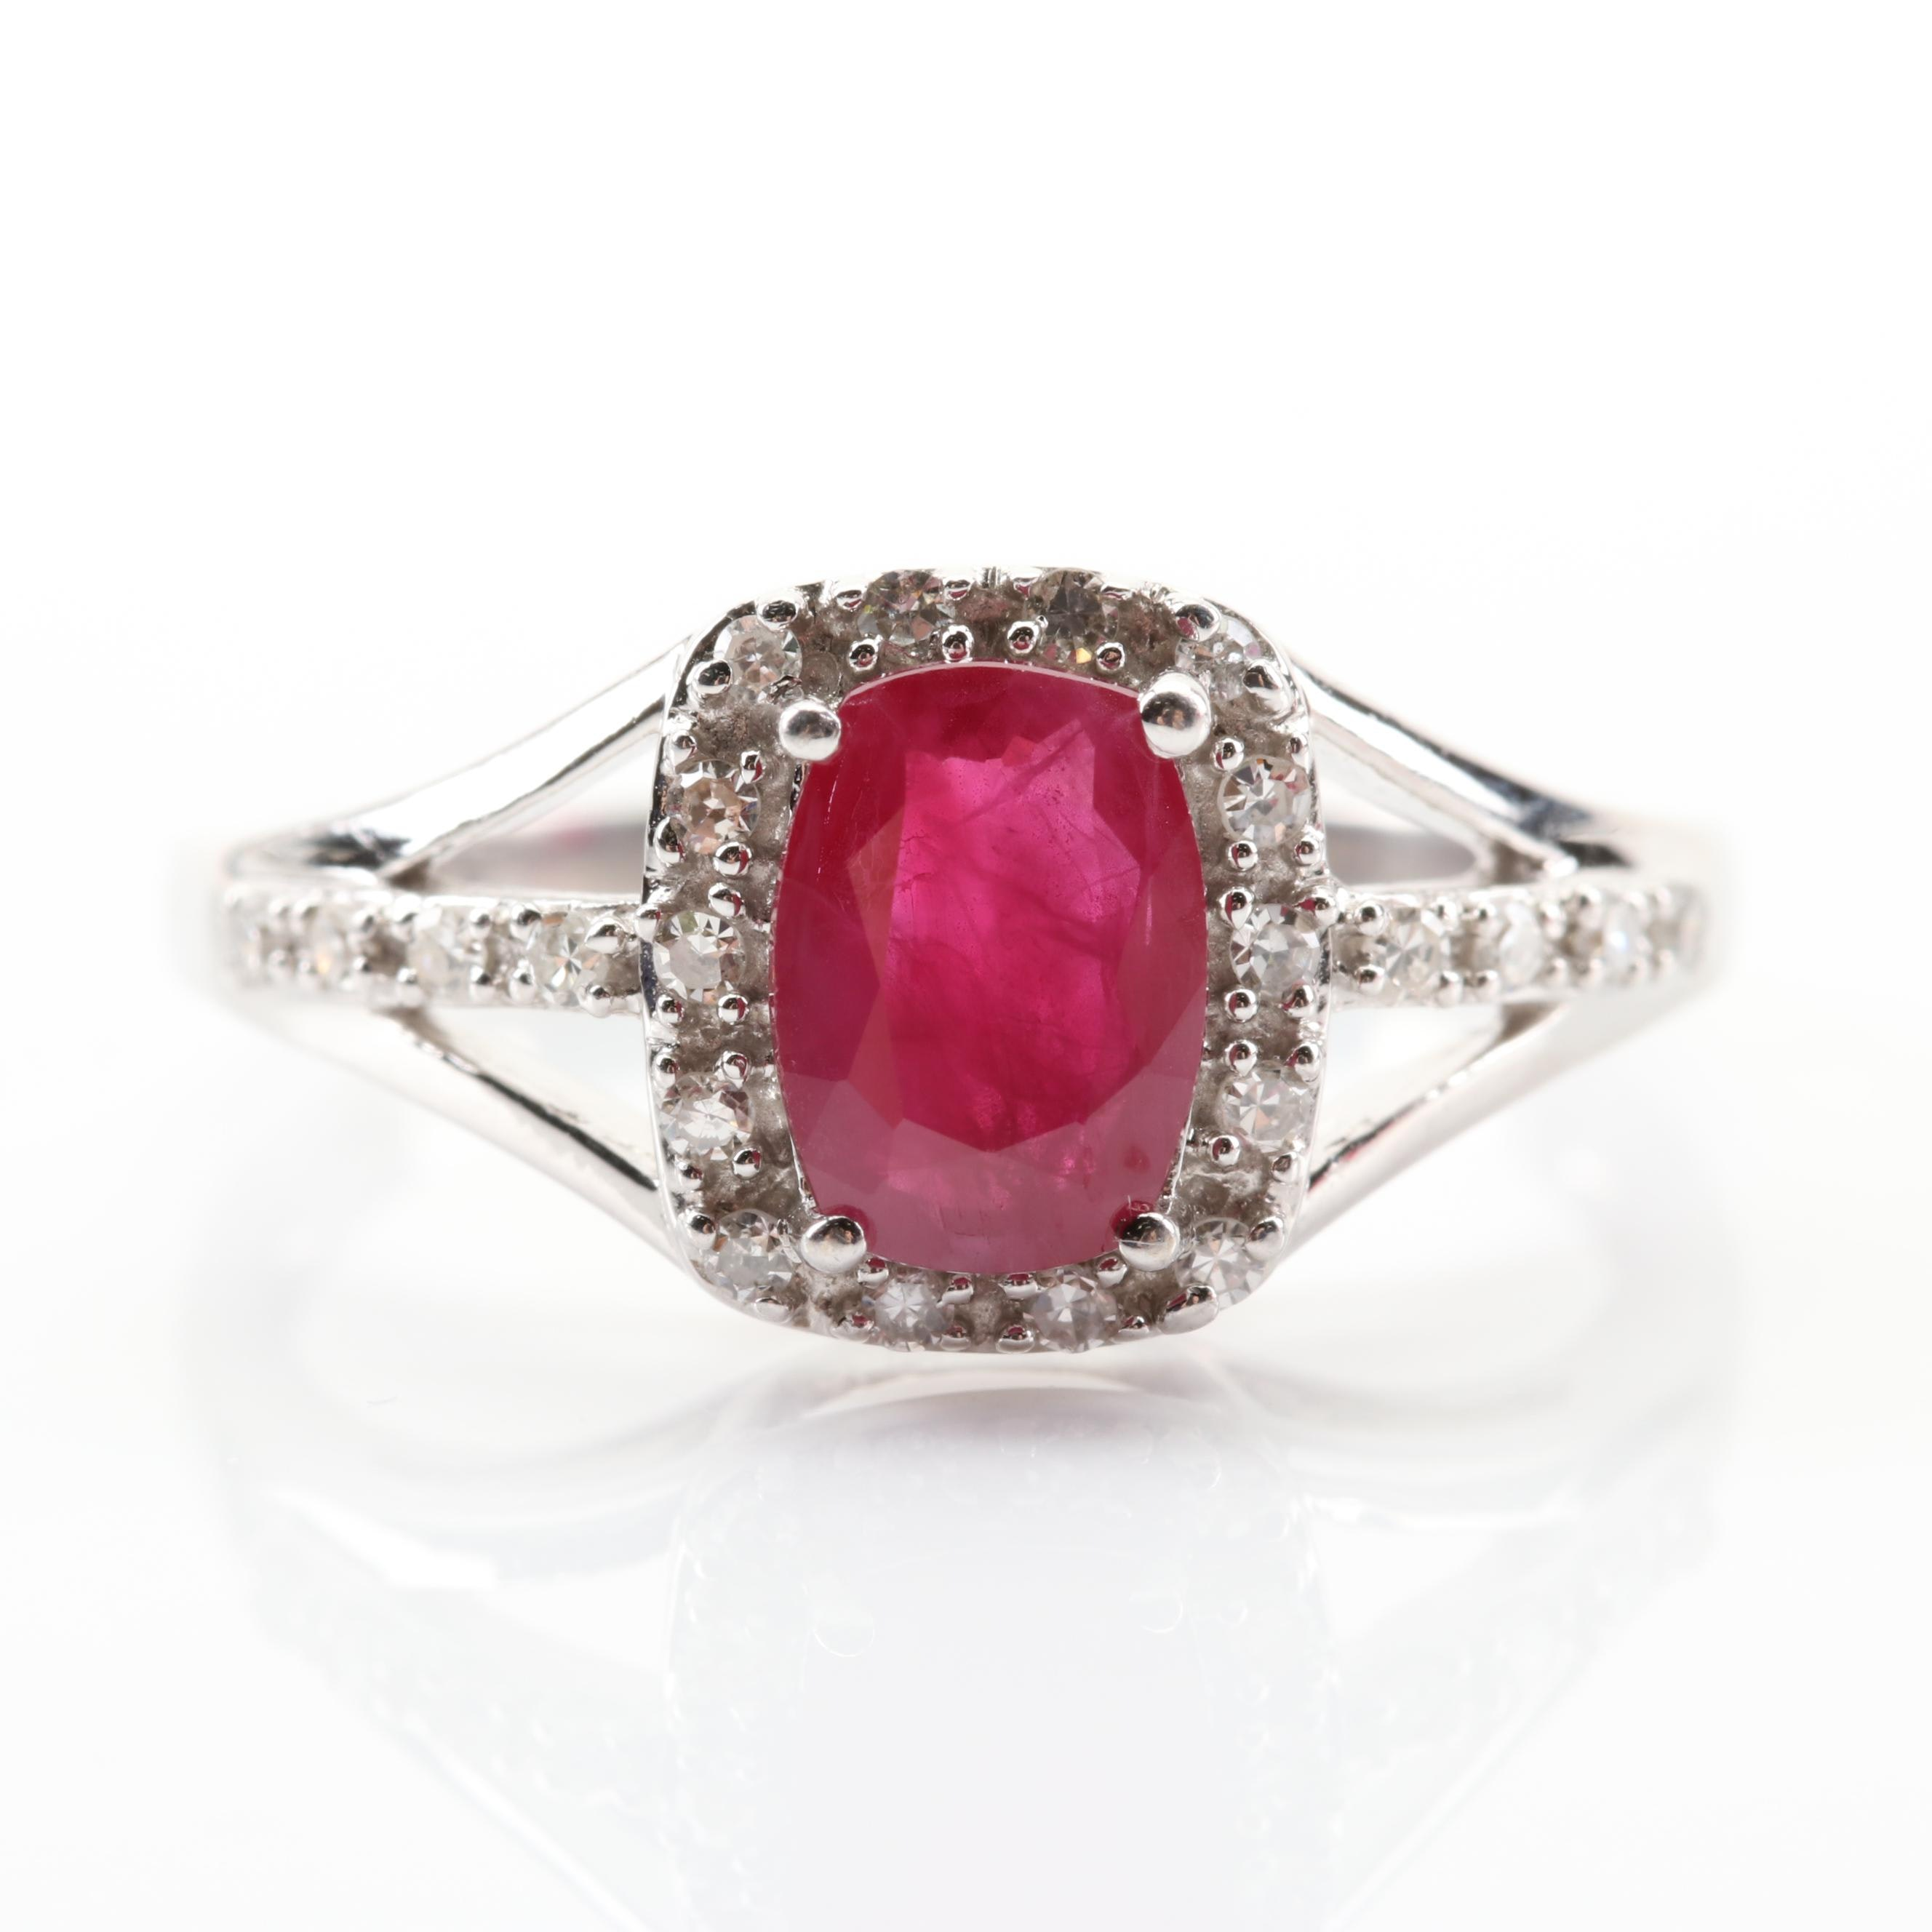 14K White Gold 1.02 CT Ruby and Diamond Ring